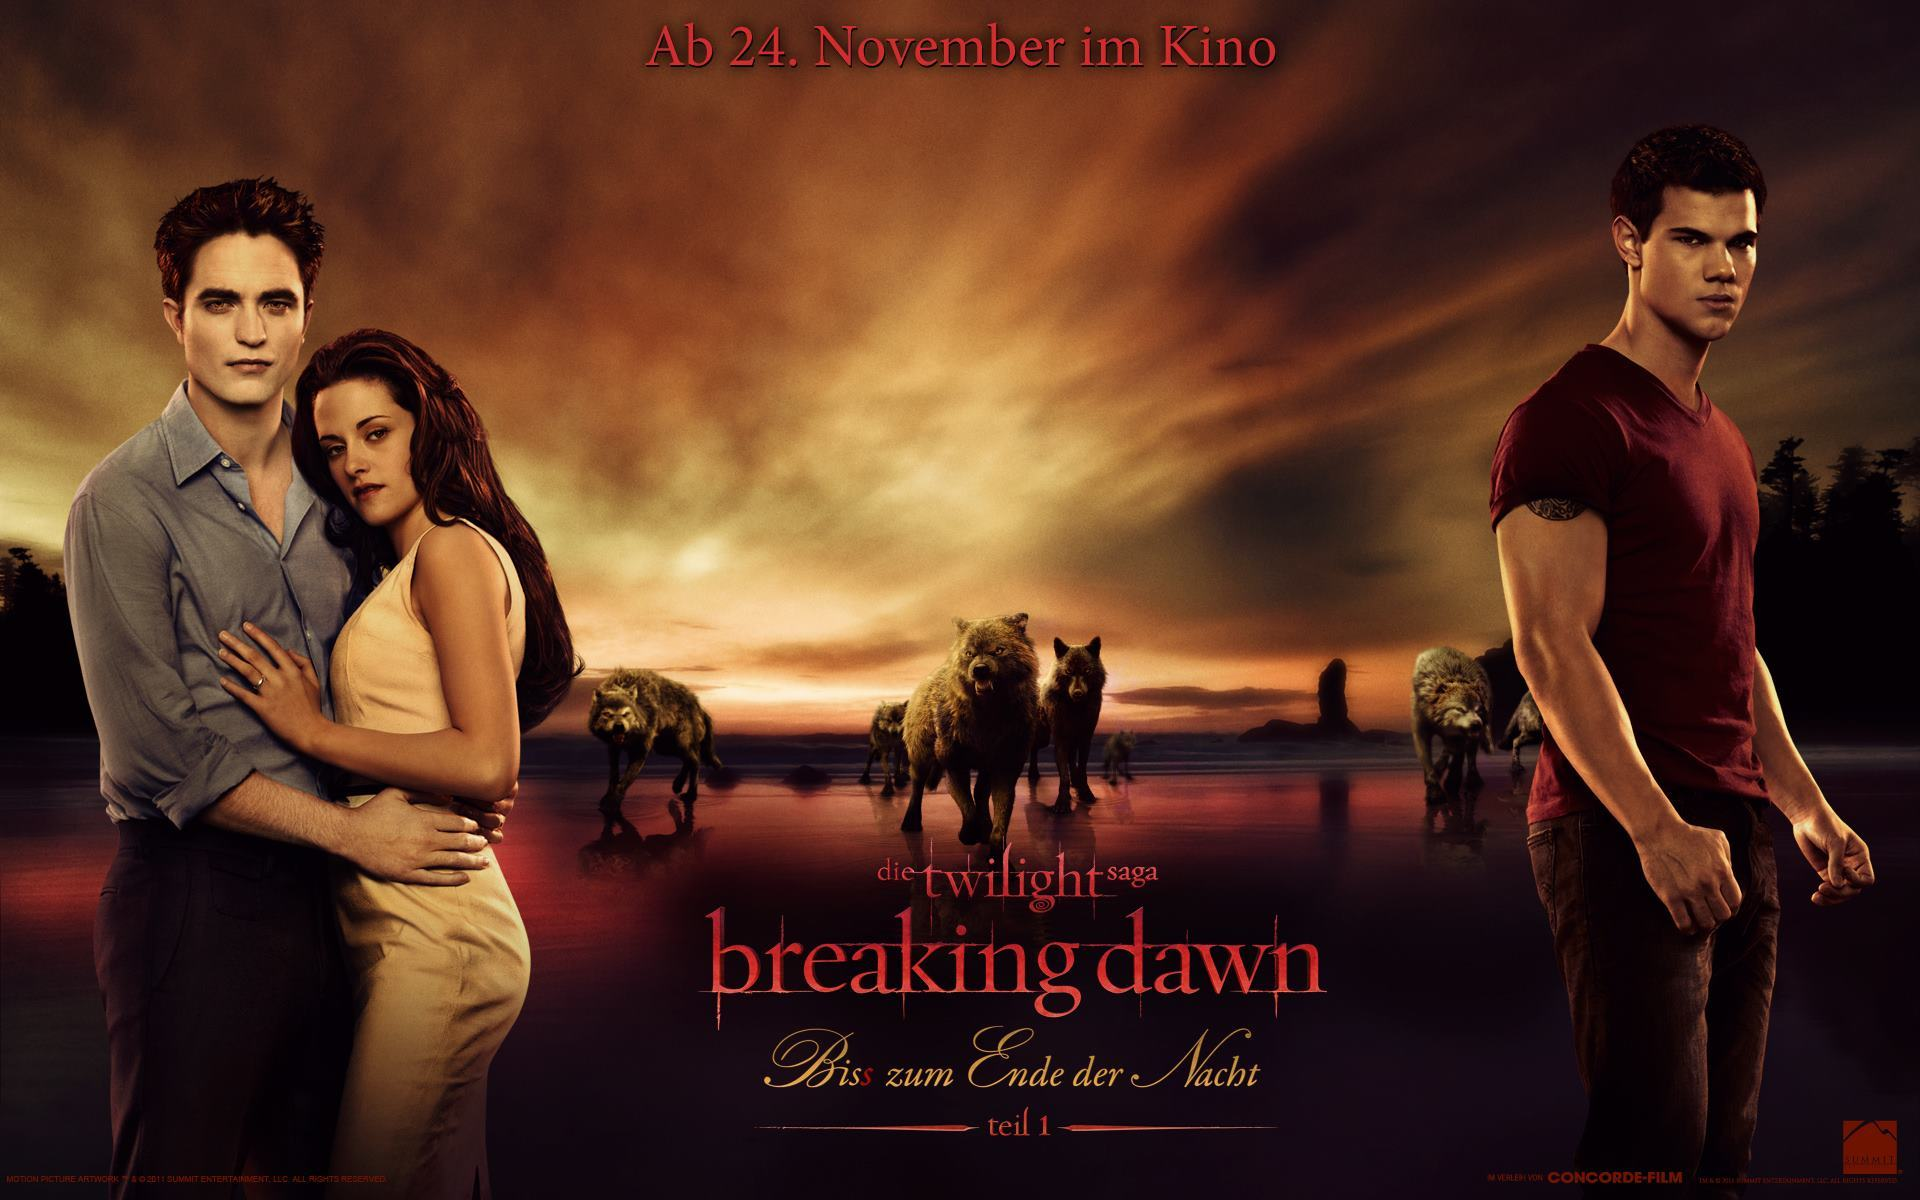 German breaking dawn wallpaper - twilight-series wallpaper